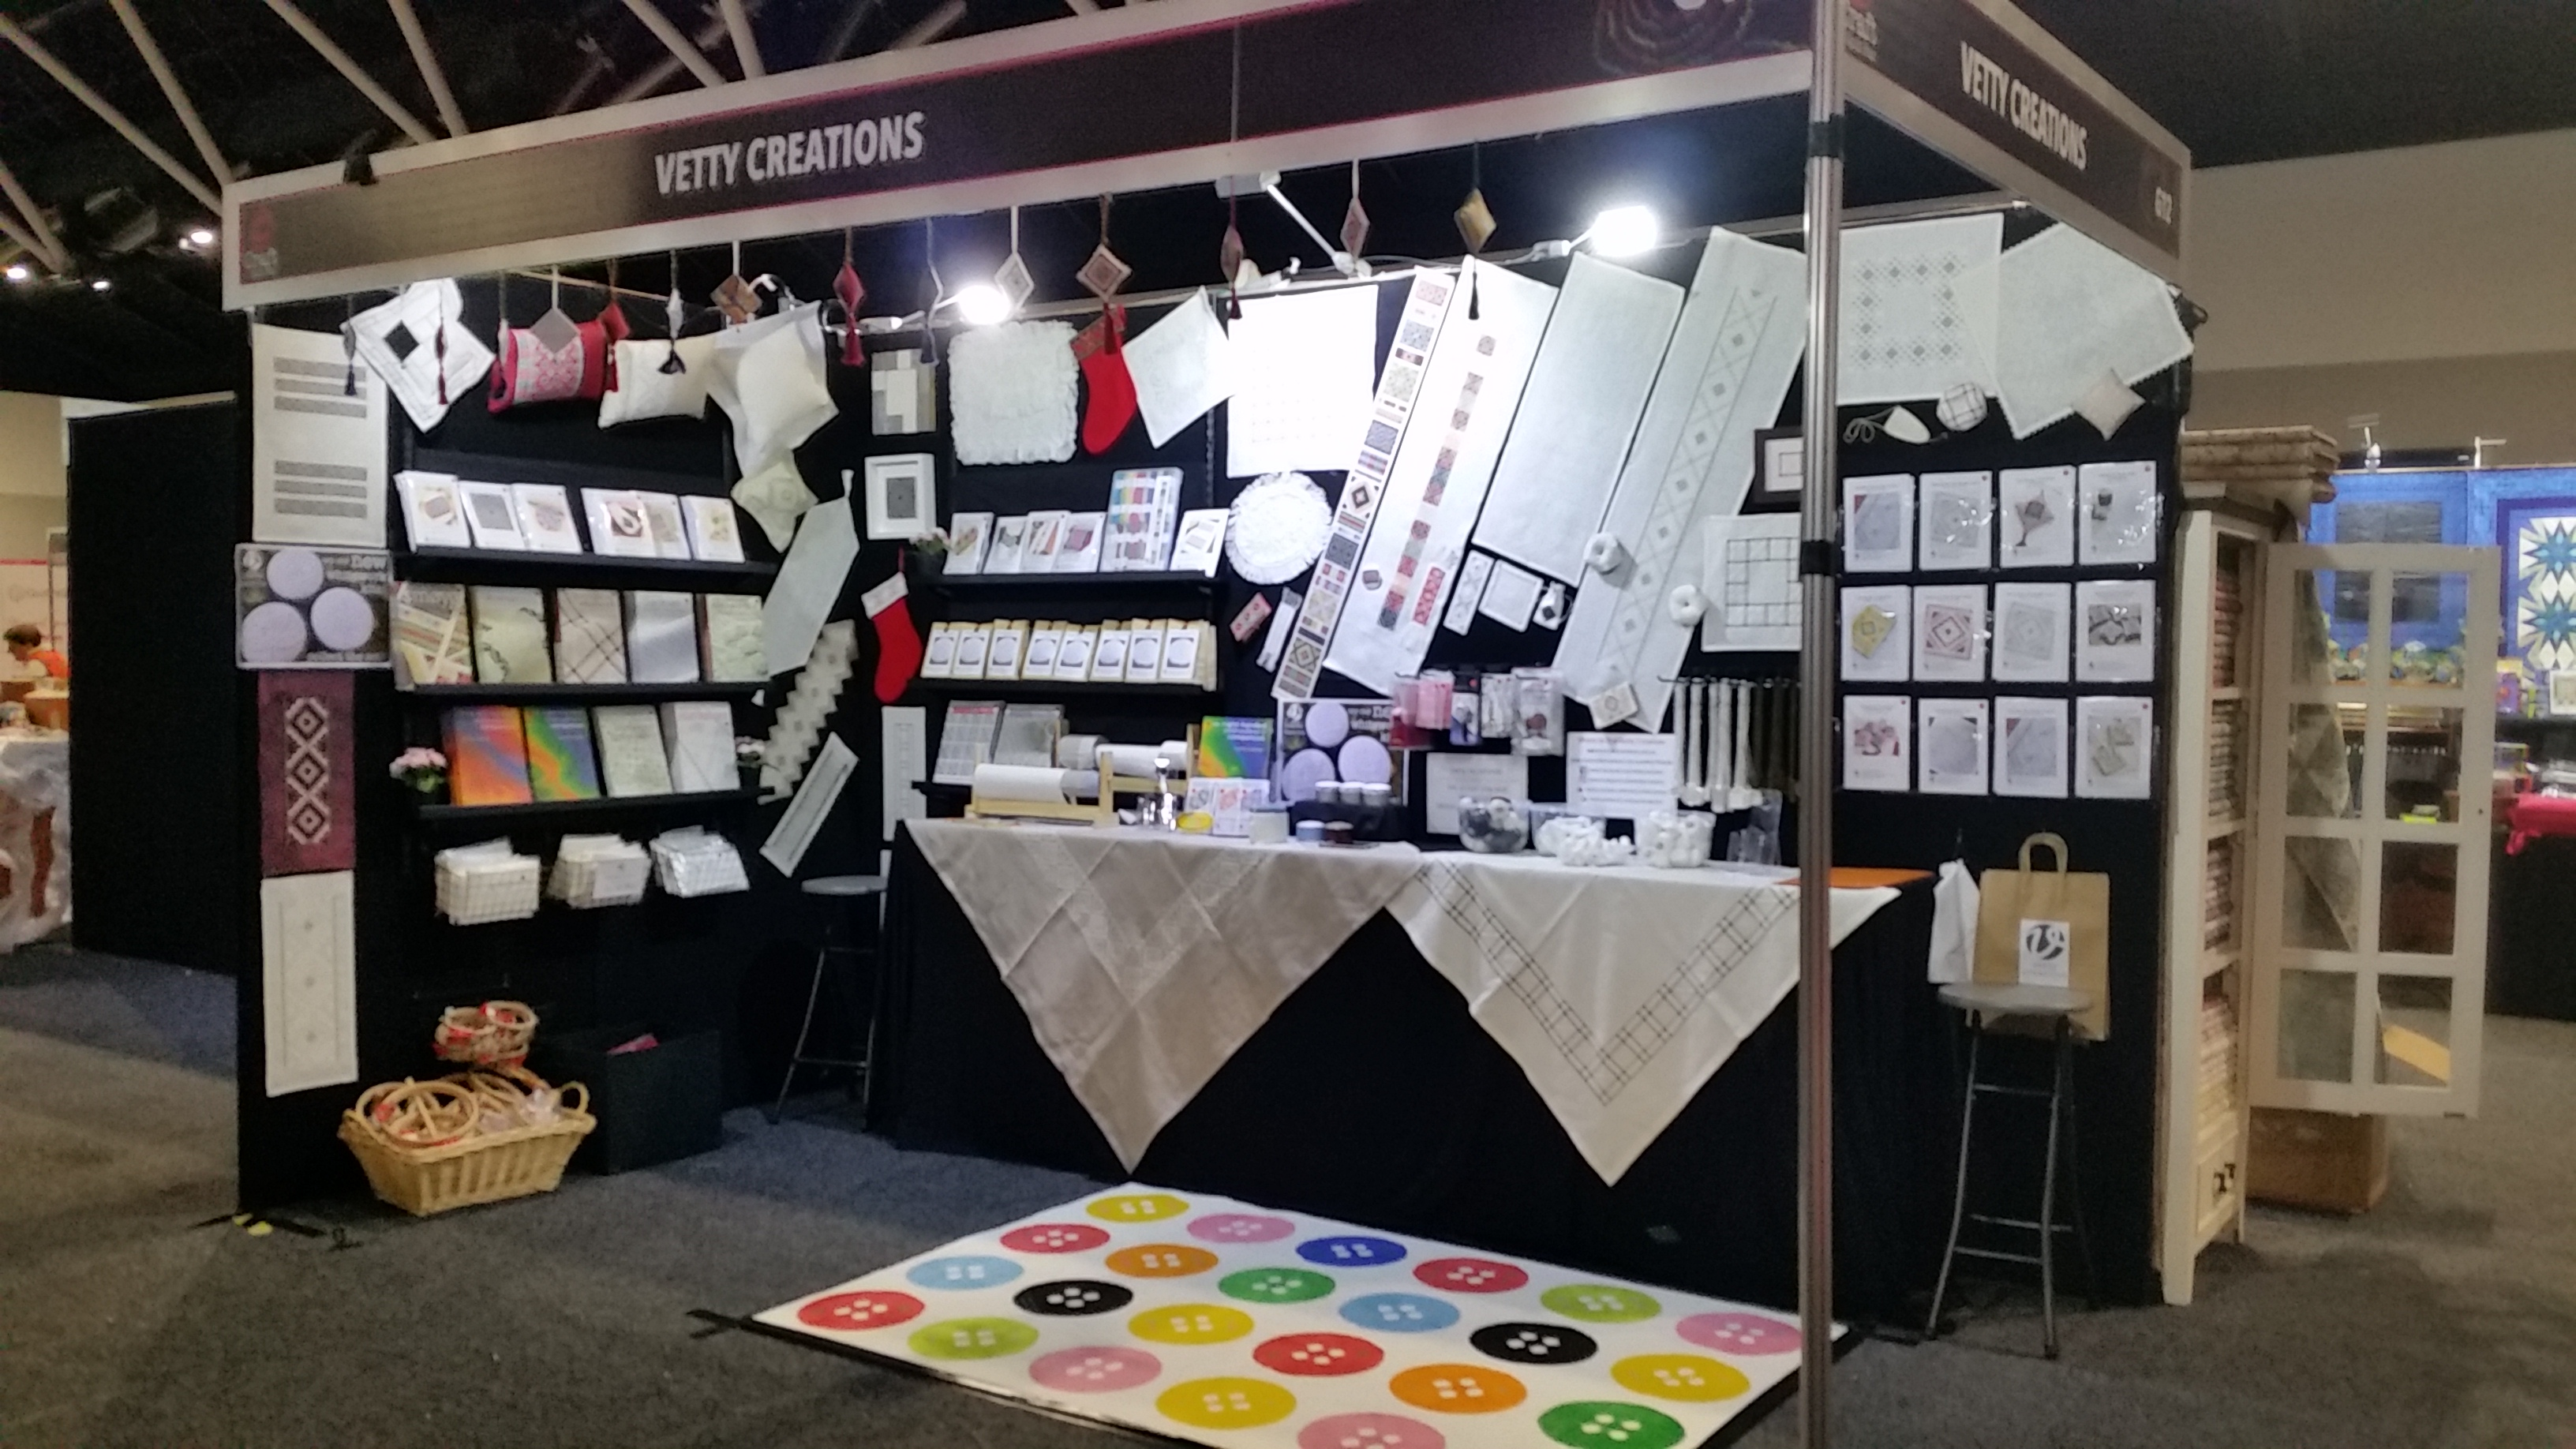 Vetty Creations at the Sydney Craft and Quilt Fair